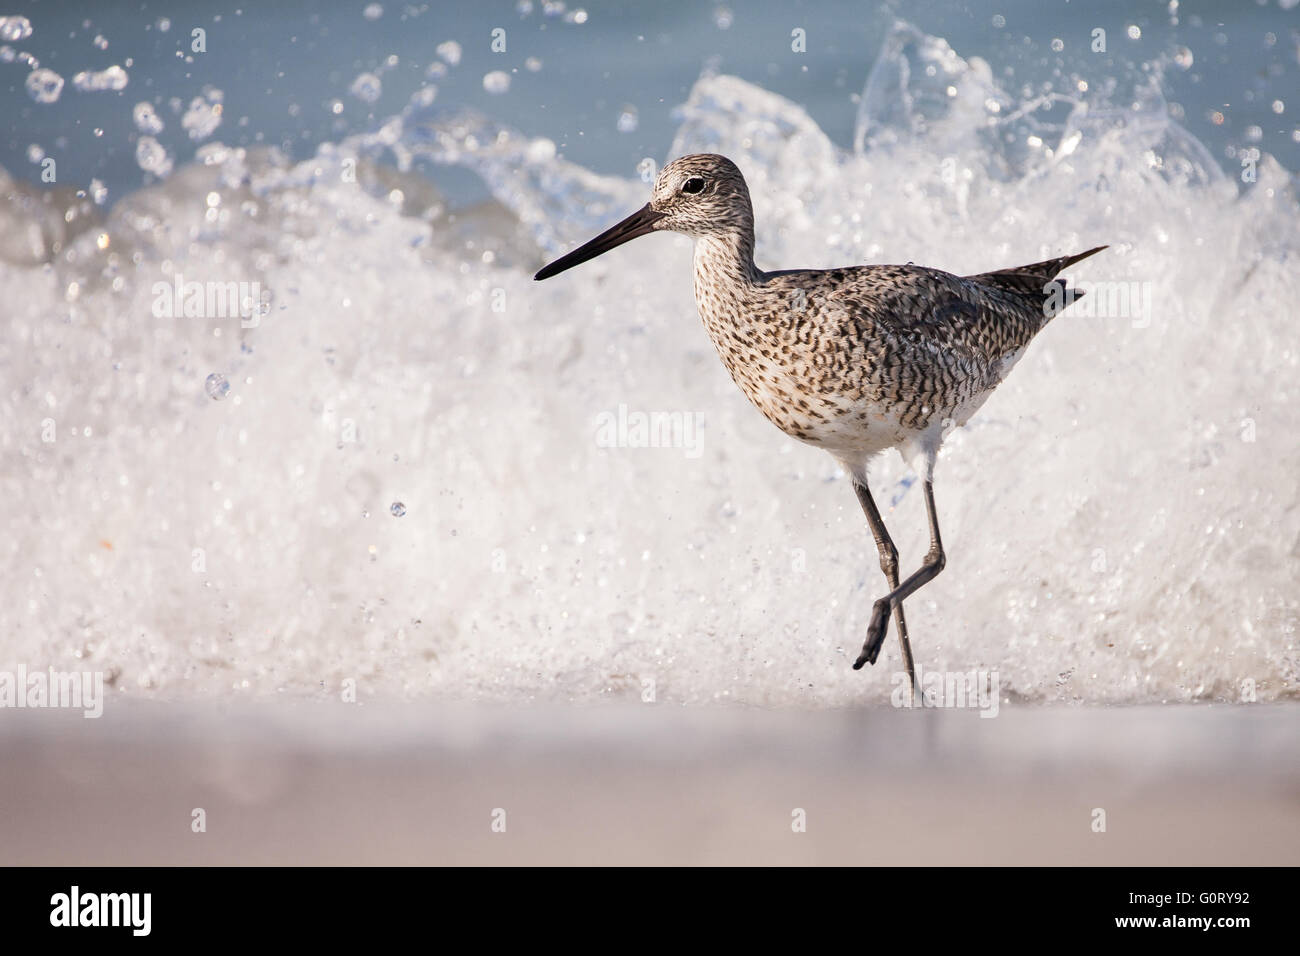 This willet is running from a wave. - Stock Image